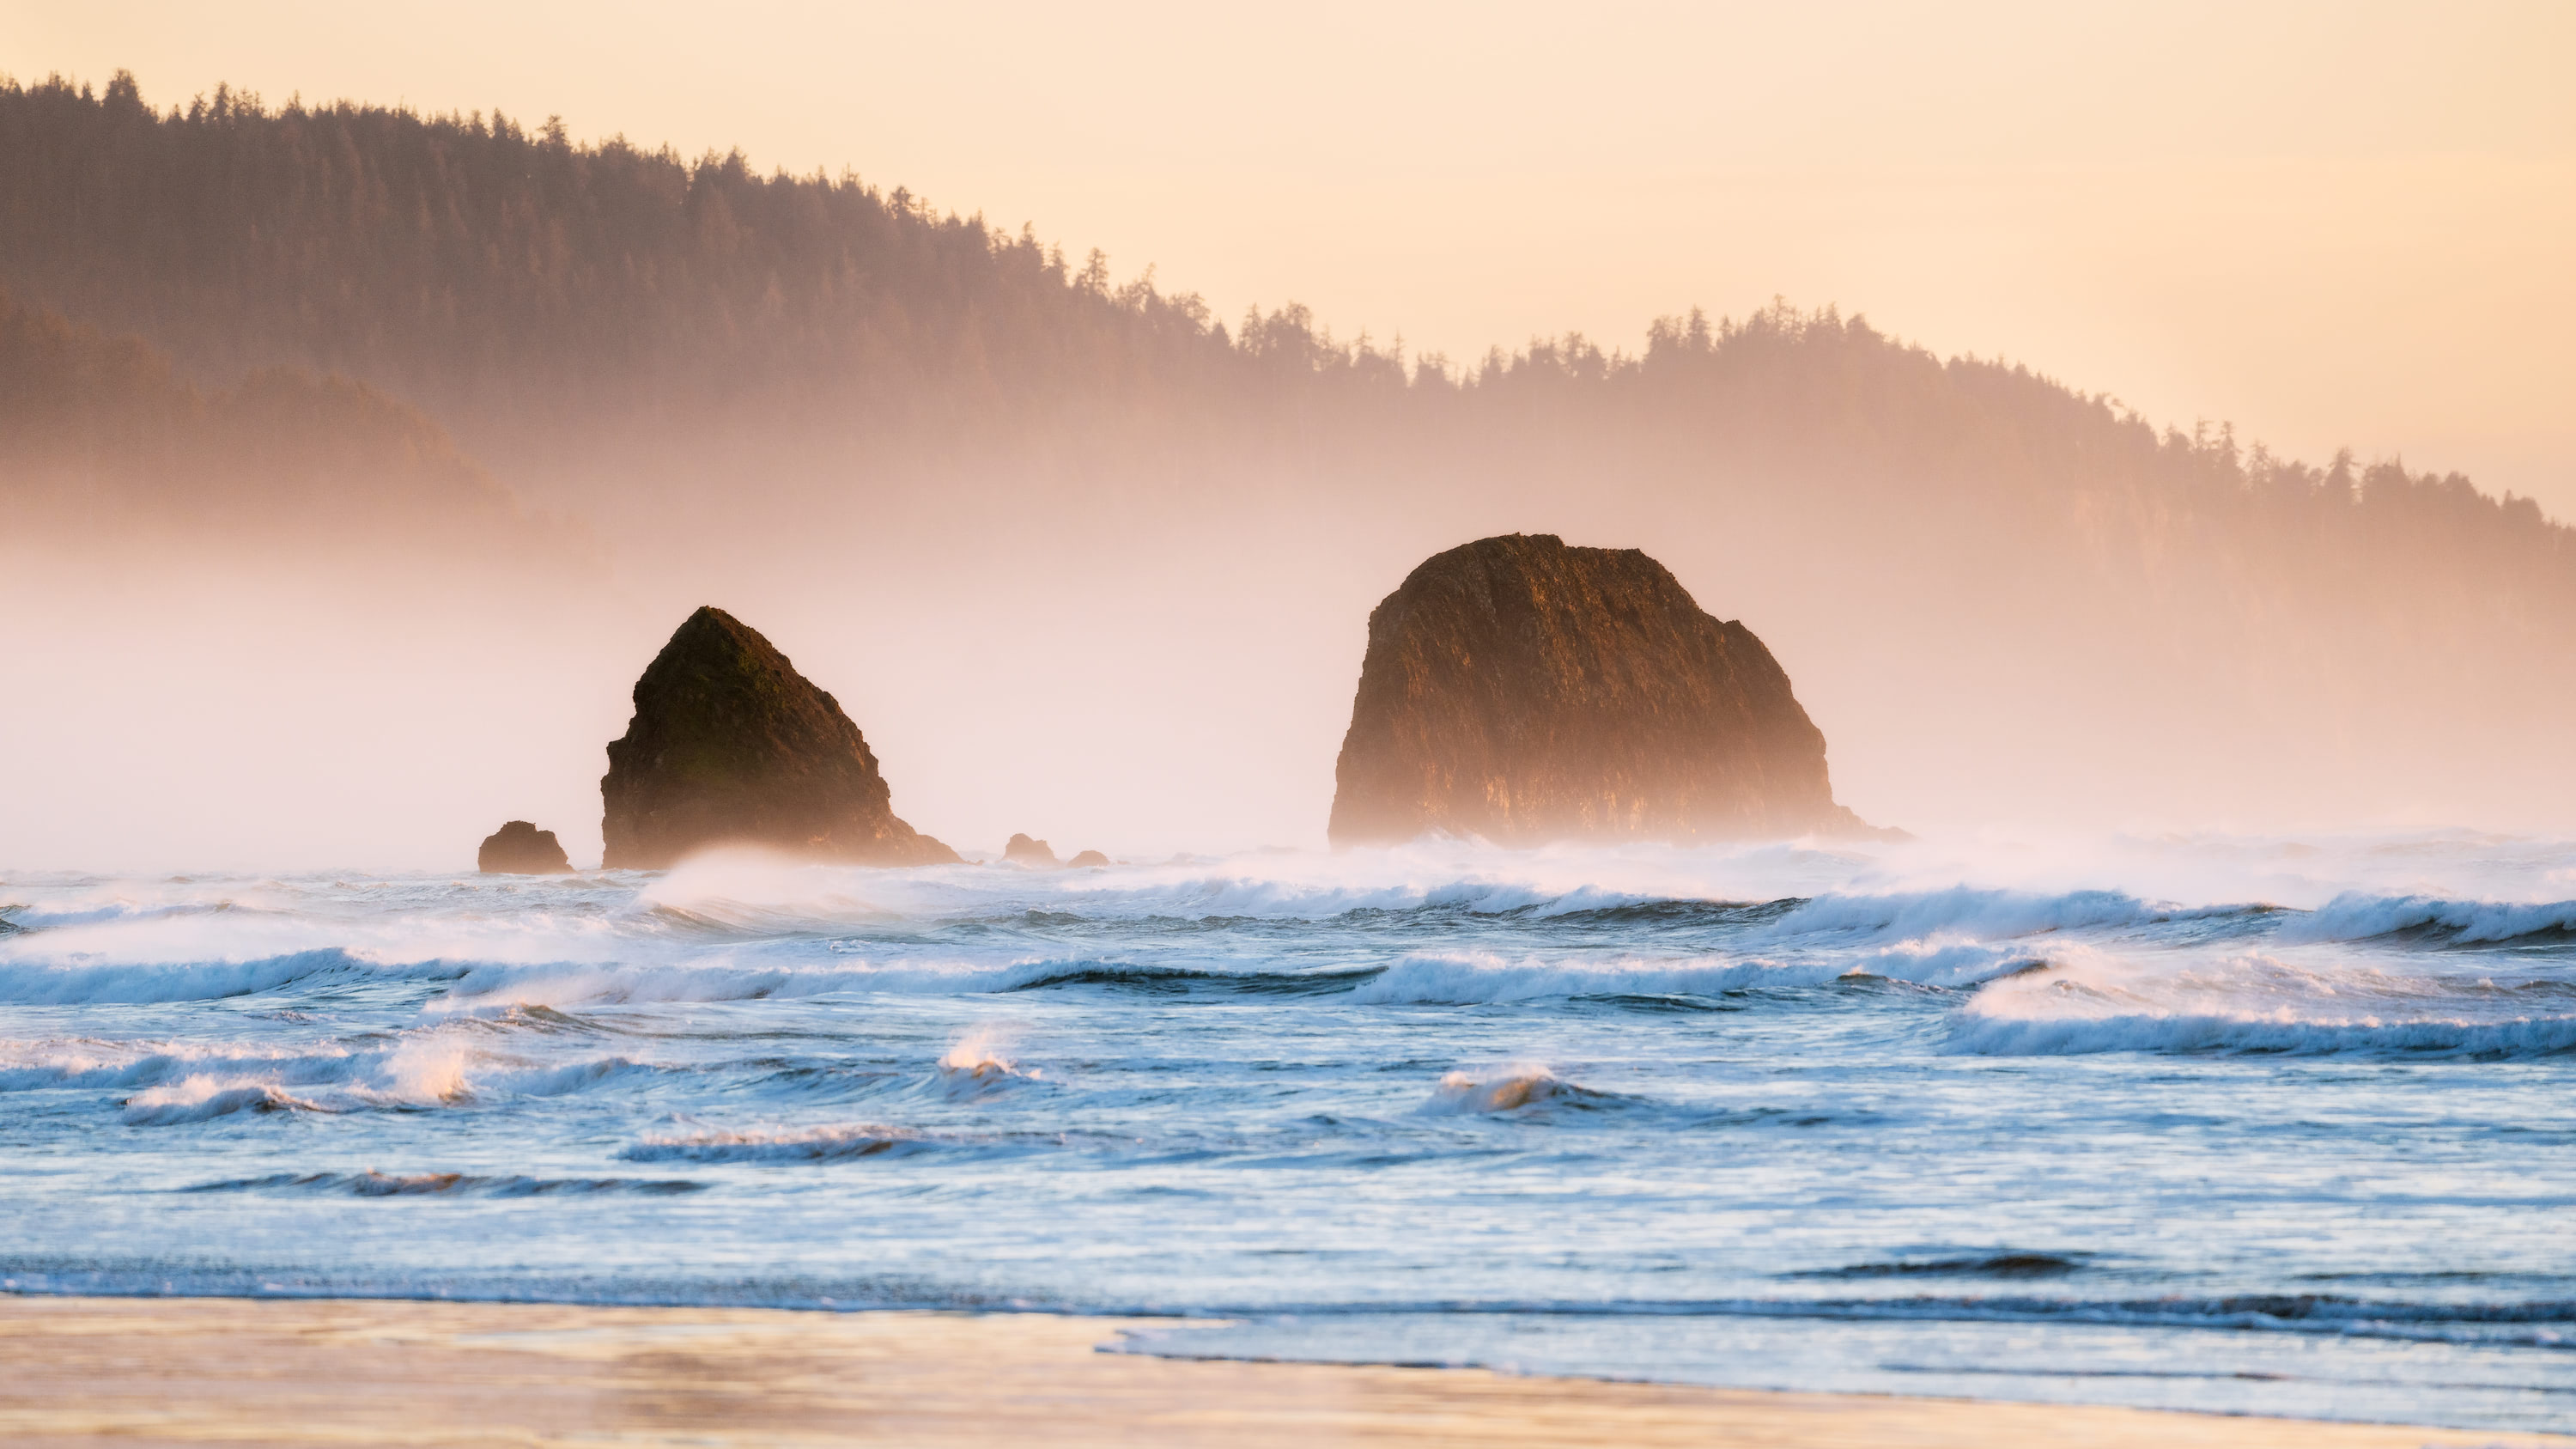 An Incredible 24 hour Getaway to Cannon Beach, Oregon